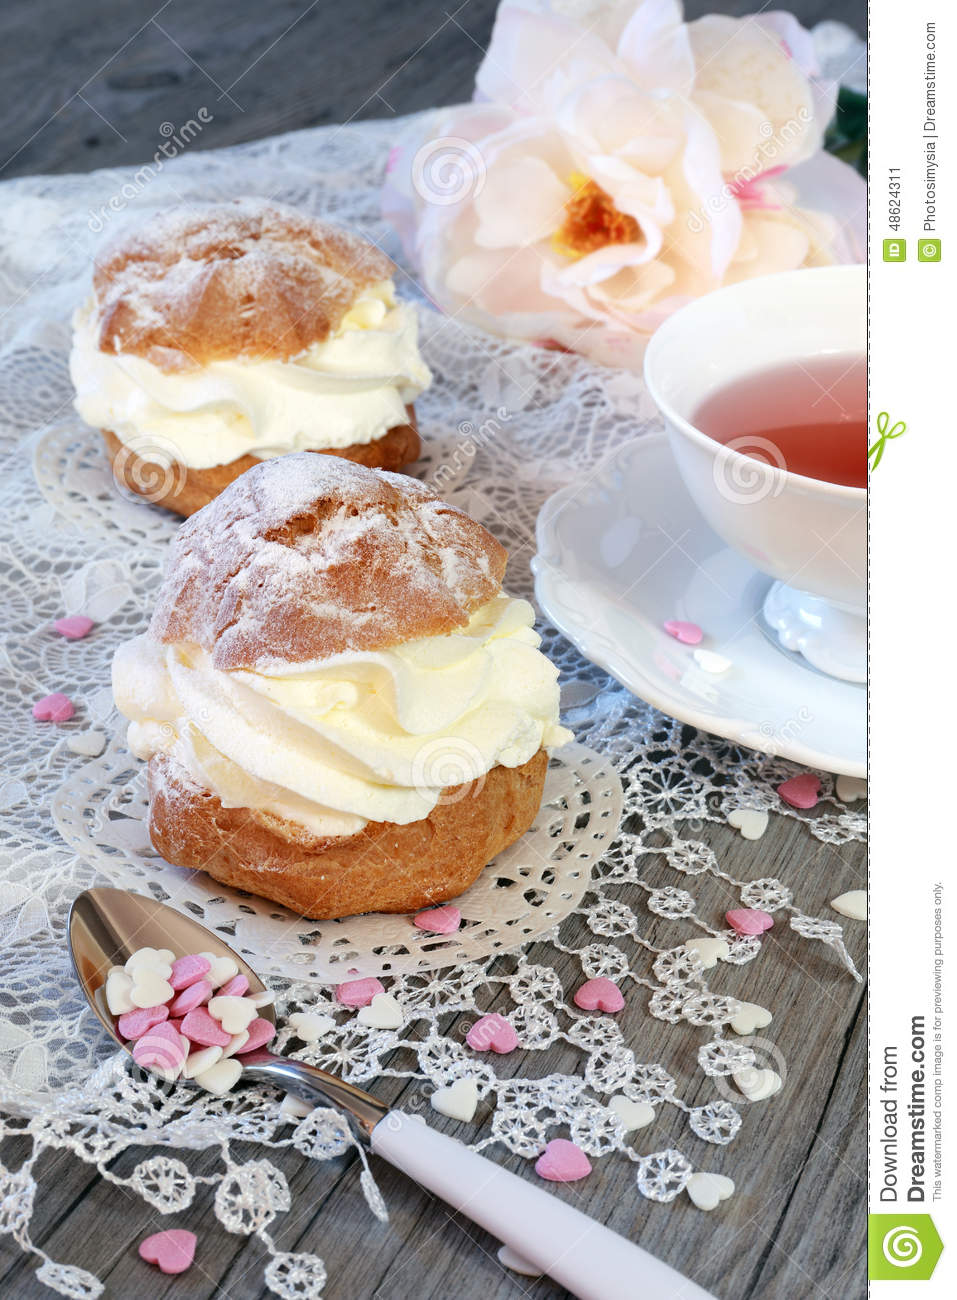 Valentine s Day: Romantic tea drinking with pastry chantilly cre